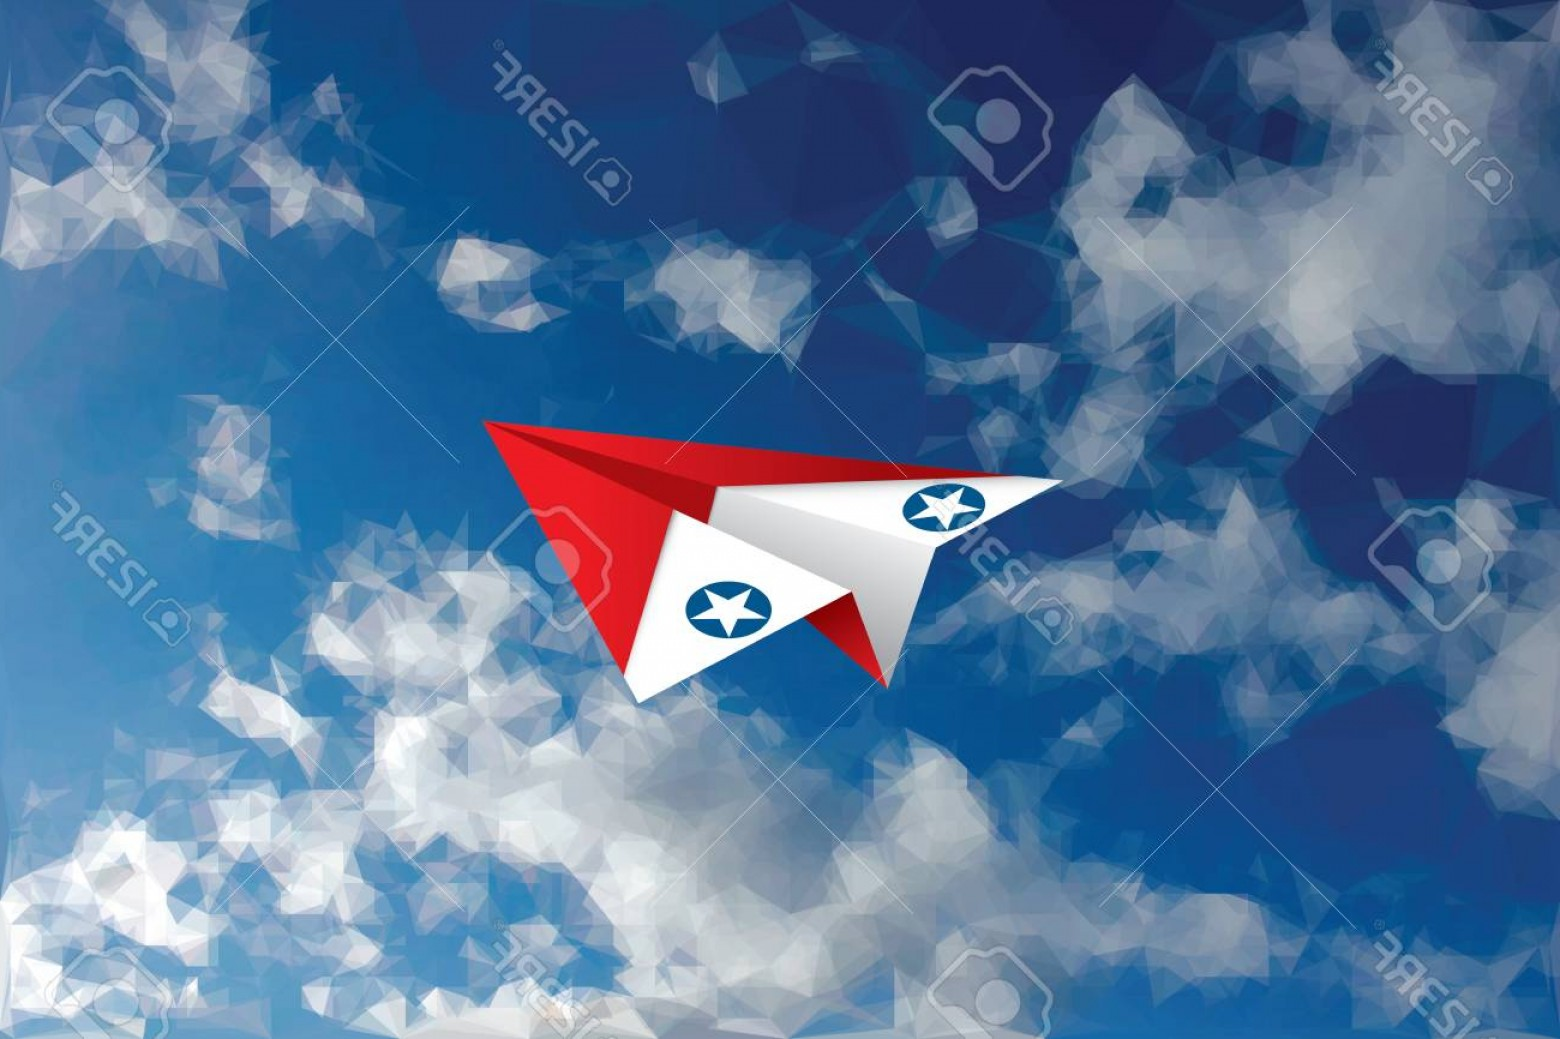 USAF Vector: Photostock Vector Vector Abstract Background With Low Poly Cloudy Sky And Red And White Paper Plane With Usaf Star